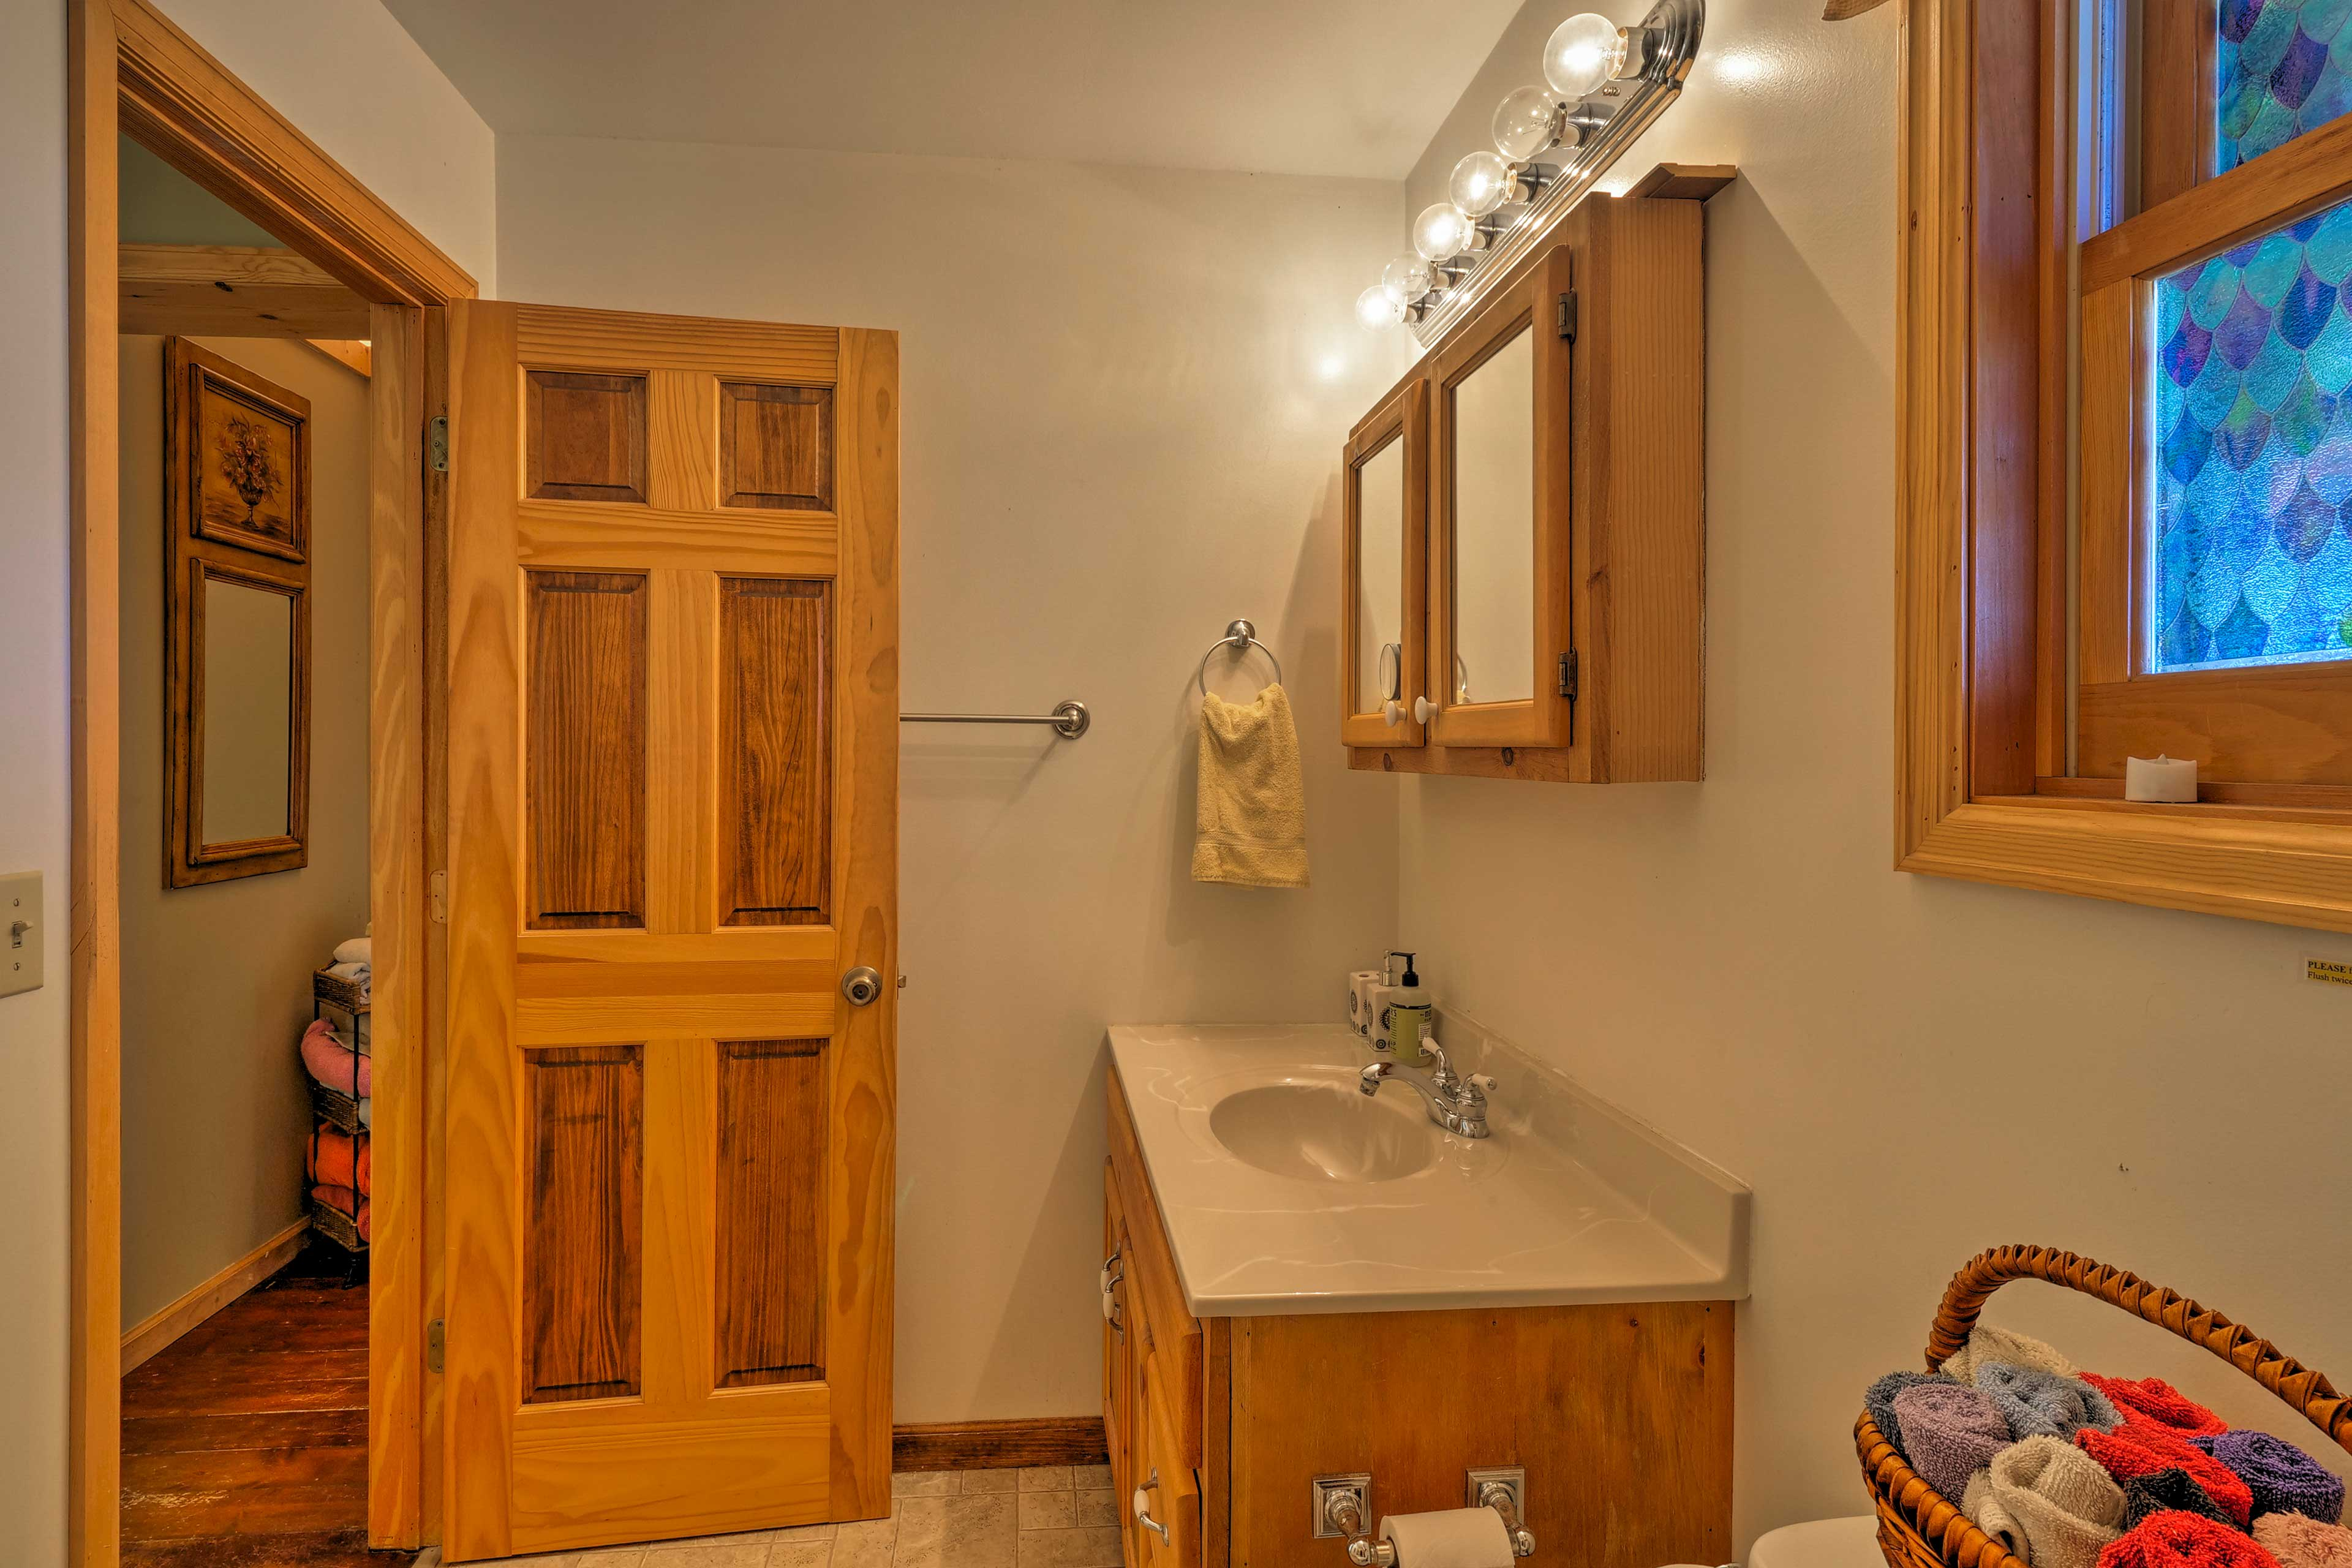 The bathroom offers plenty of space for your group to share.